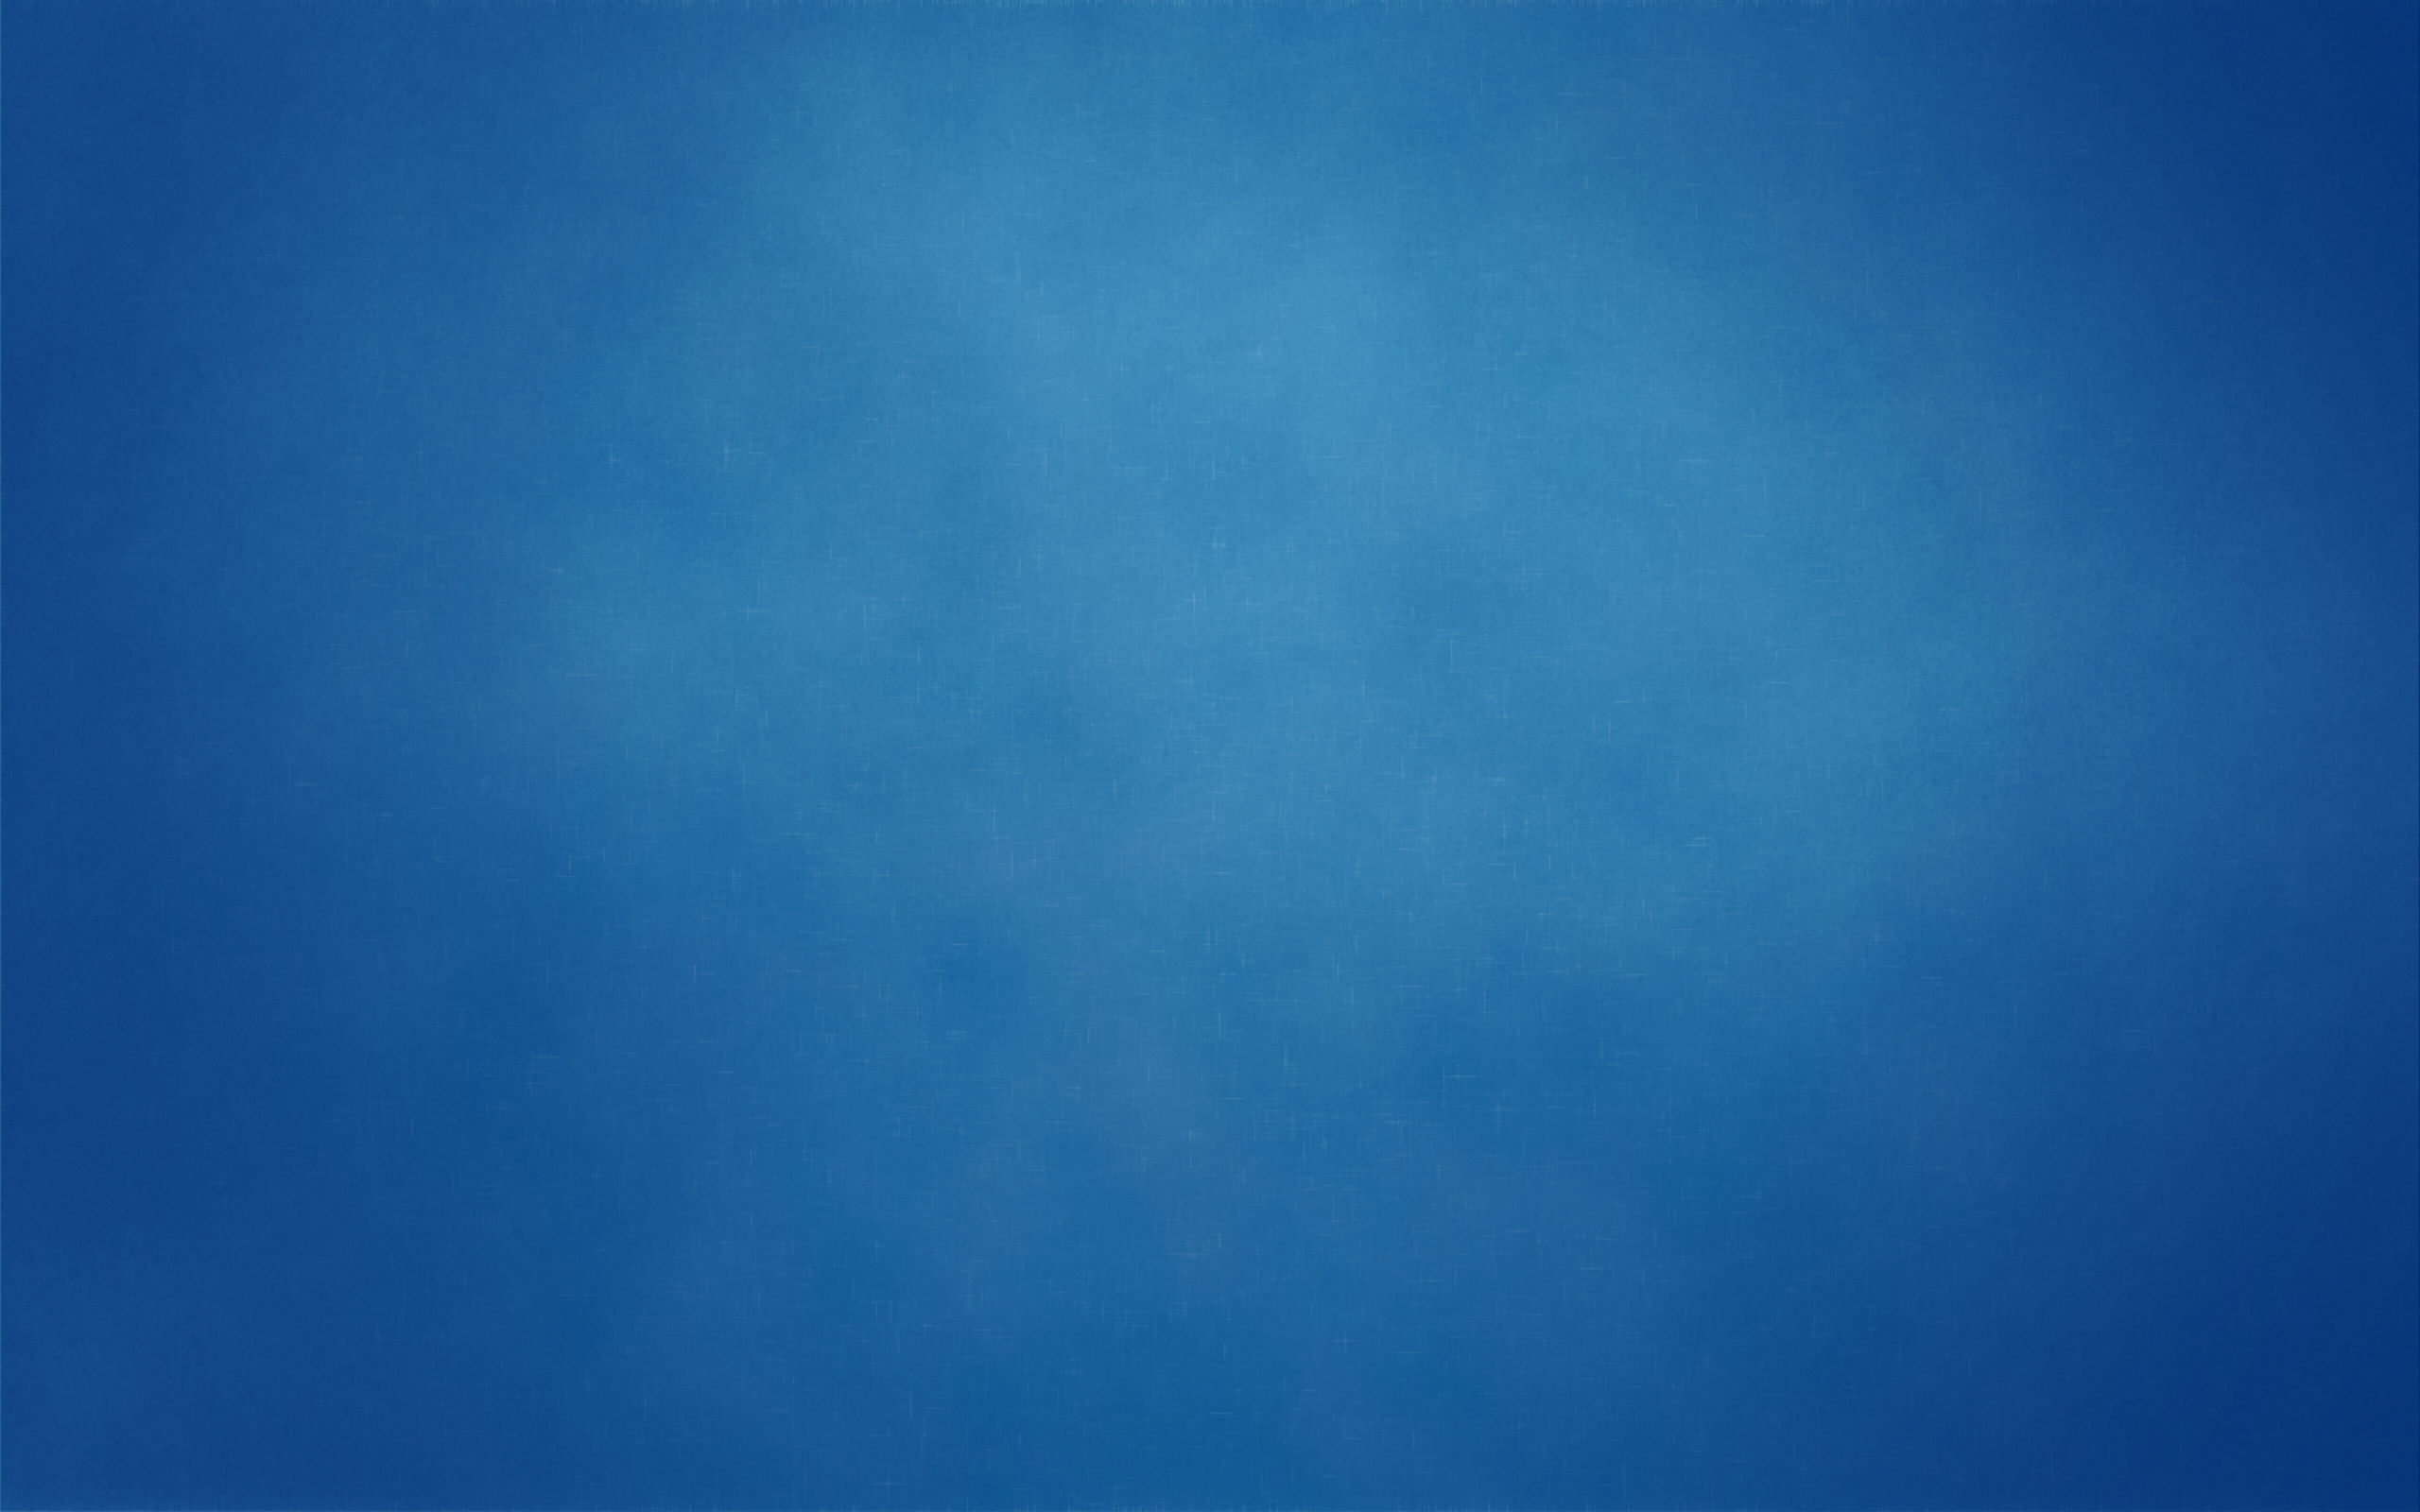 73+] Navy Blue Backgrounds on WallpaperSafari